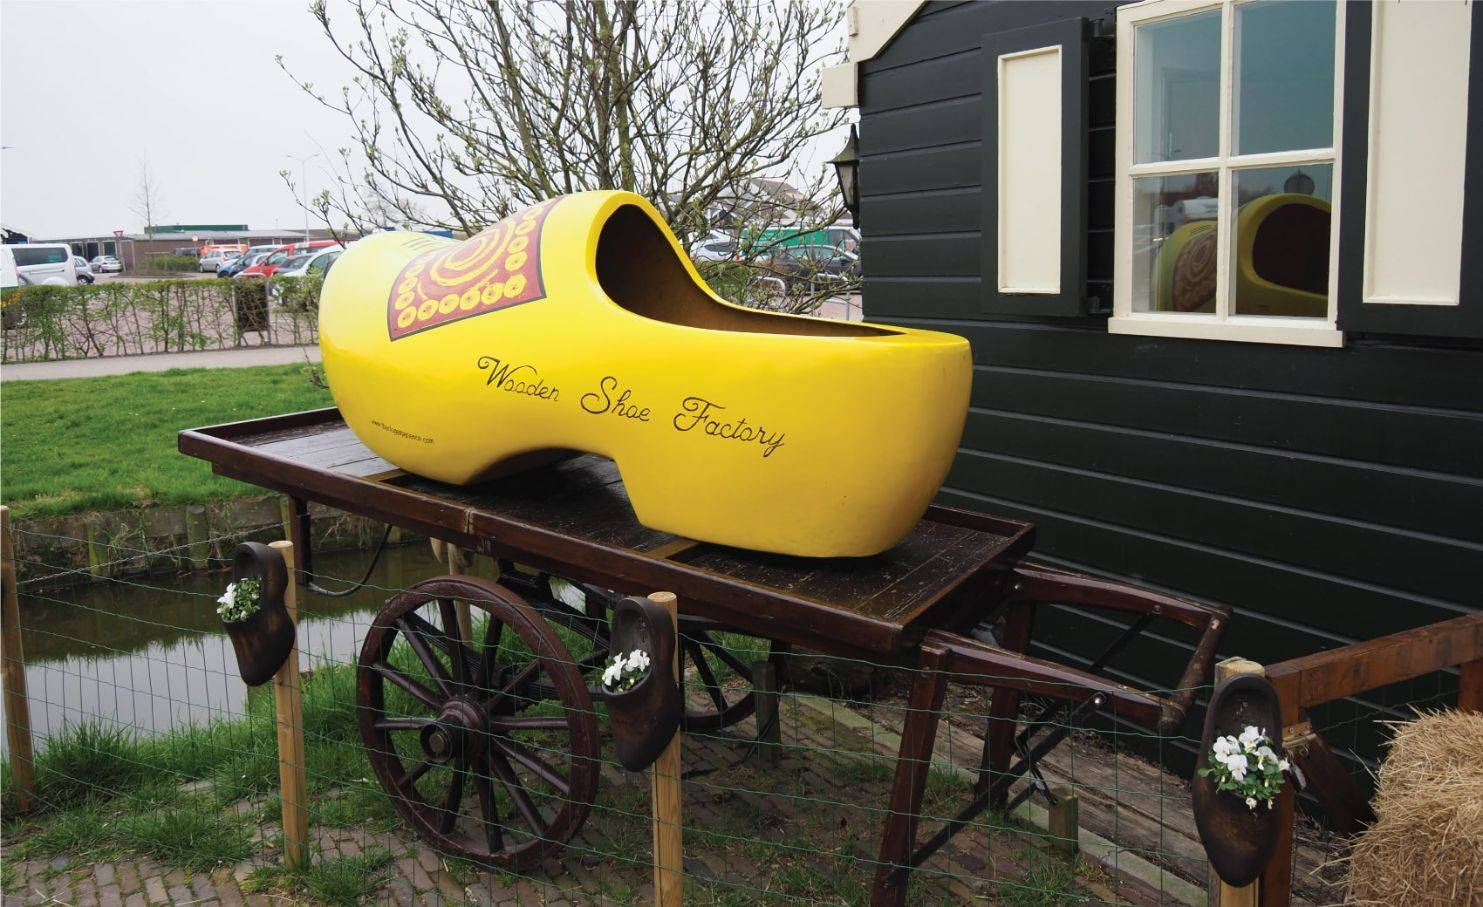 Wooden shoe factory in touristic village Volendam